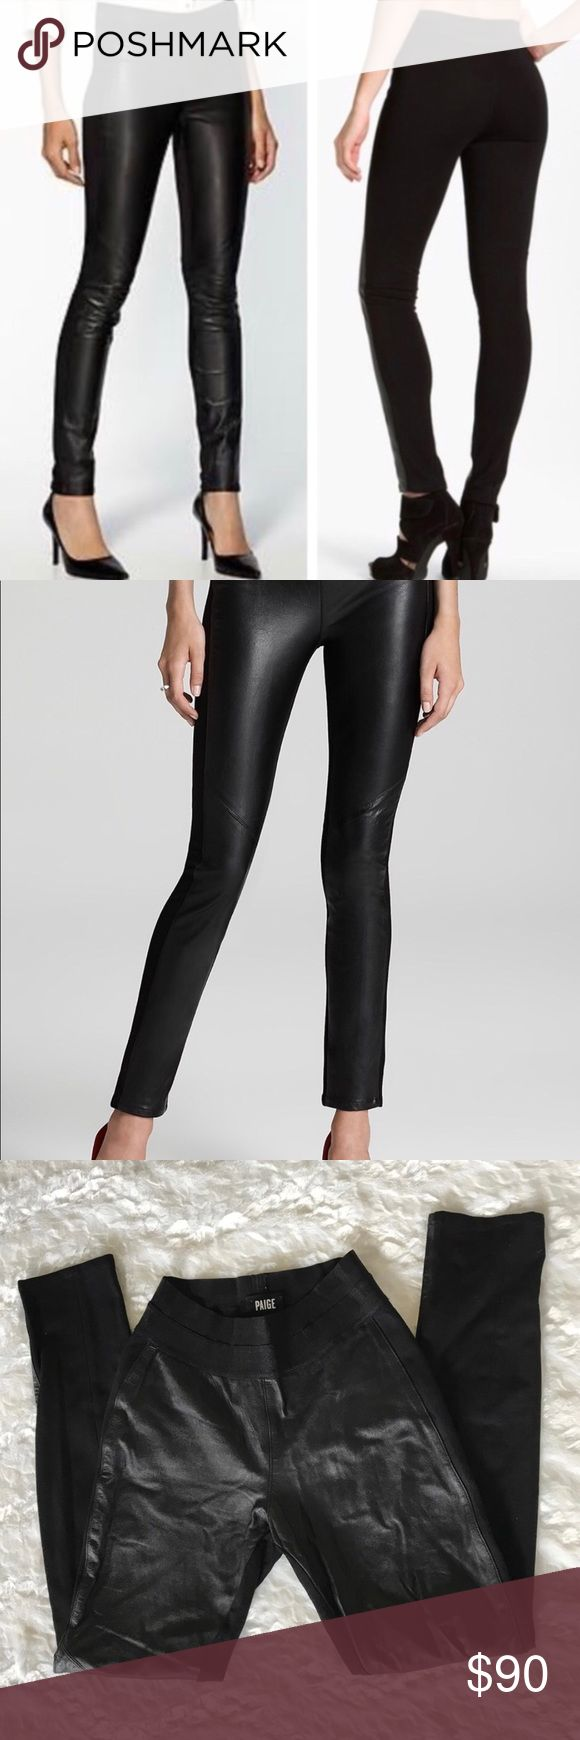 Paige Paloma Leather Leggings Paige Paloma genuine leather leggings. Motor detail. Beautiful leather front and thick legging material in back. Very flattering. I bought these here and only wore them once then got another pair for Christmas. In good shape. Size medium- true to size. PAIGE Pants Leggings